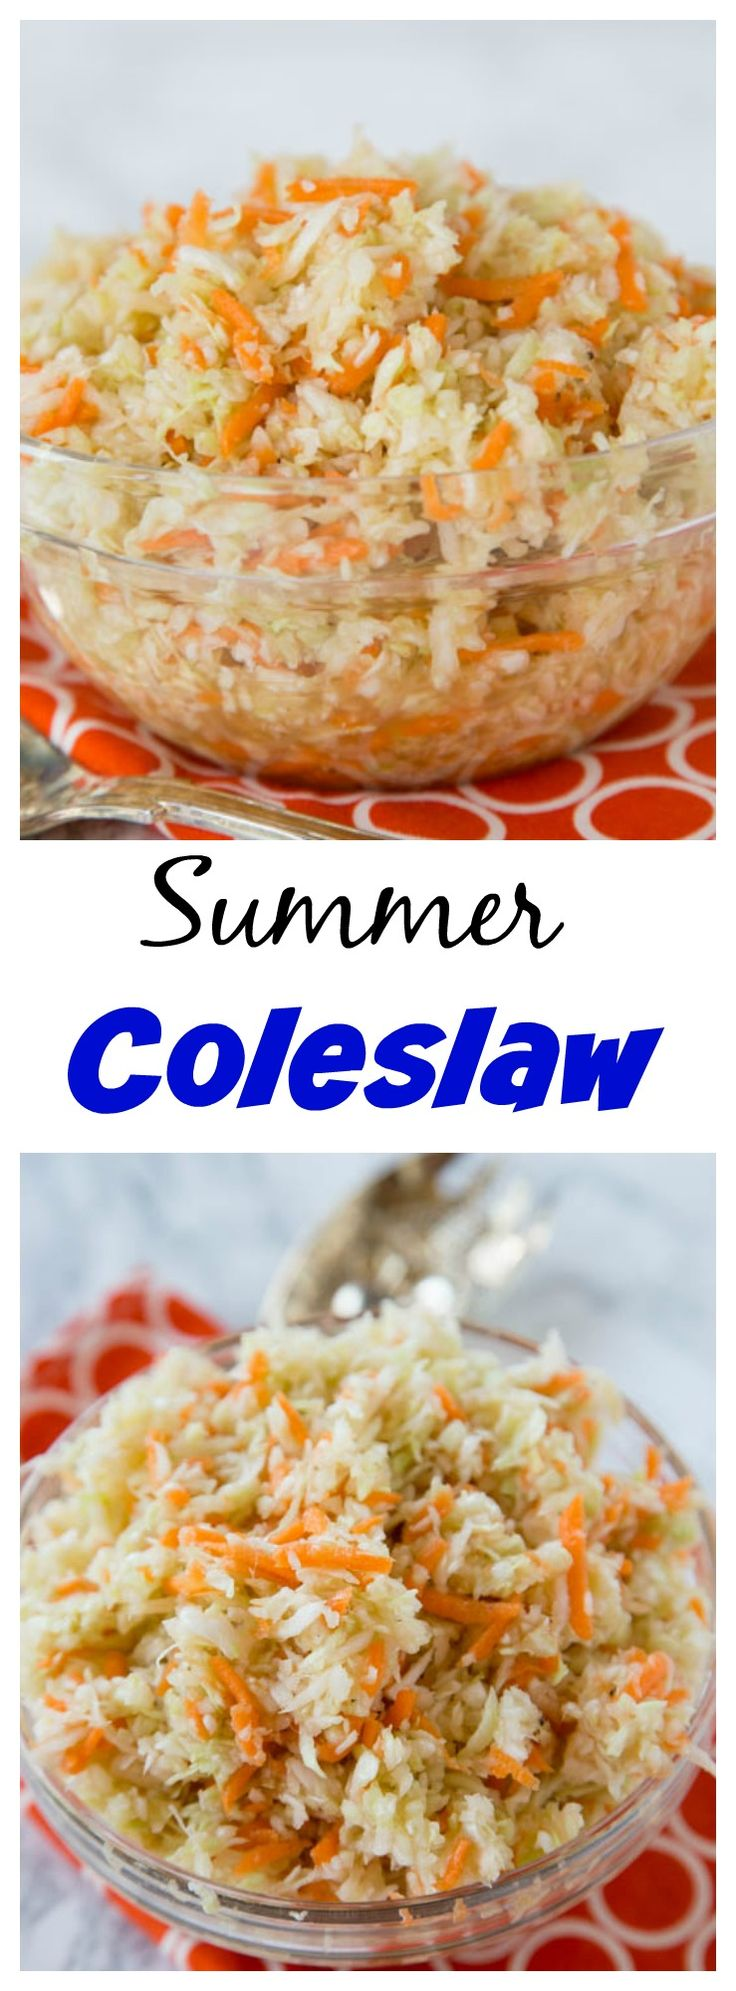 Summer Coleslaw – light and tangy  no mayo coleslaw recipe that you can make all summer long!